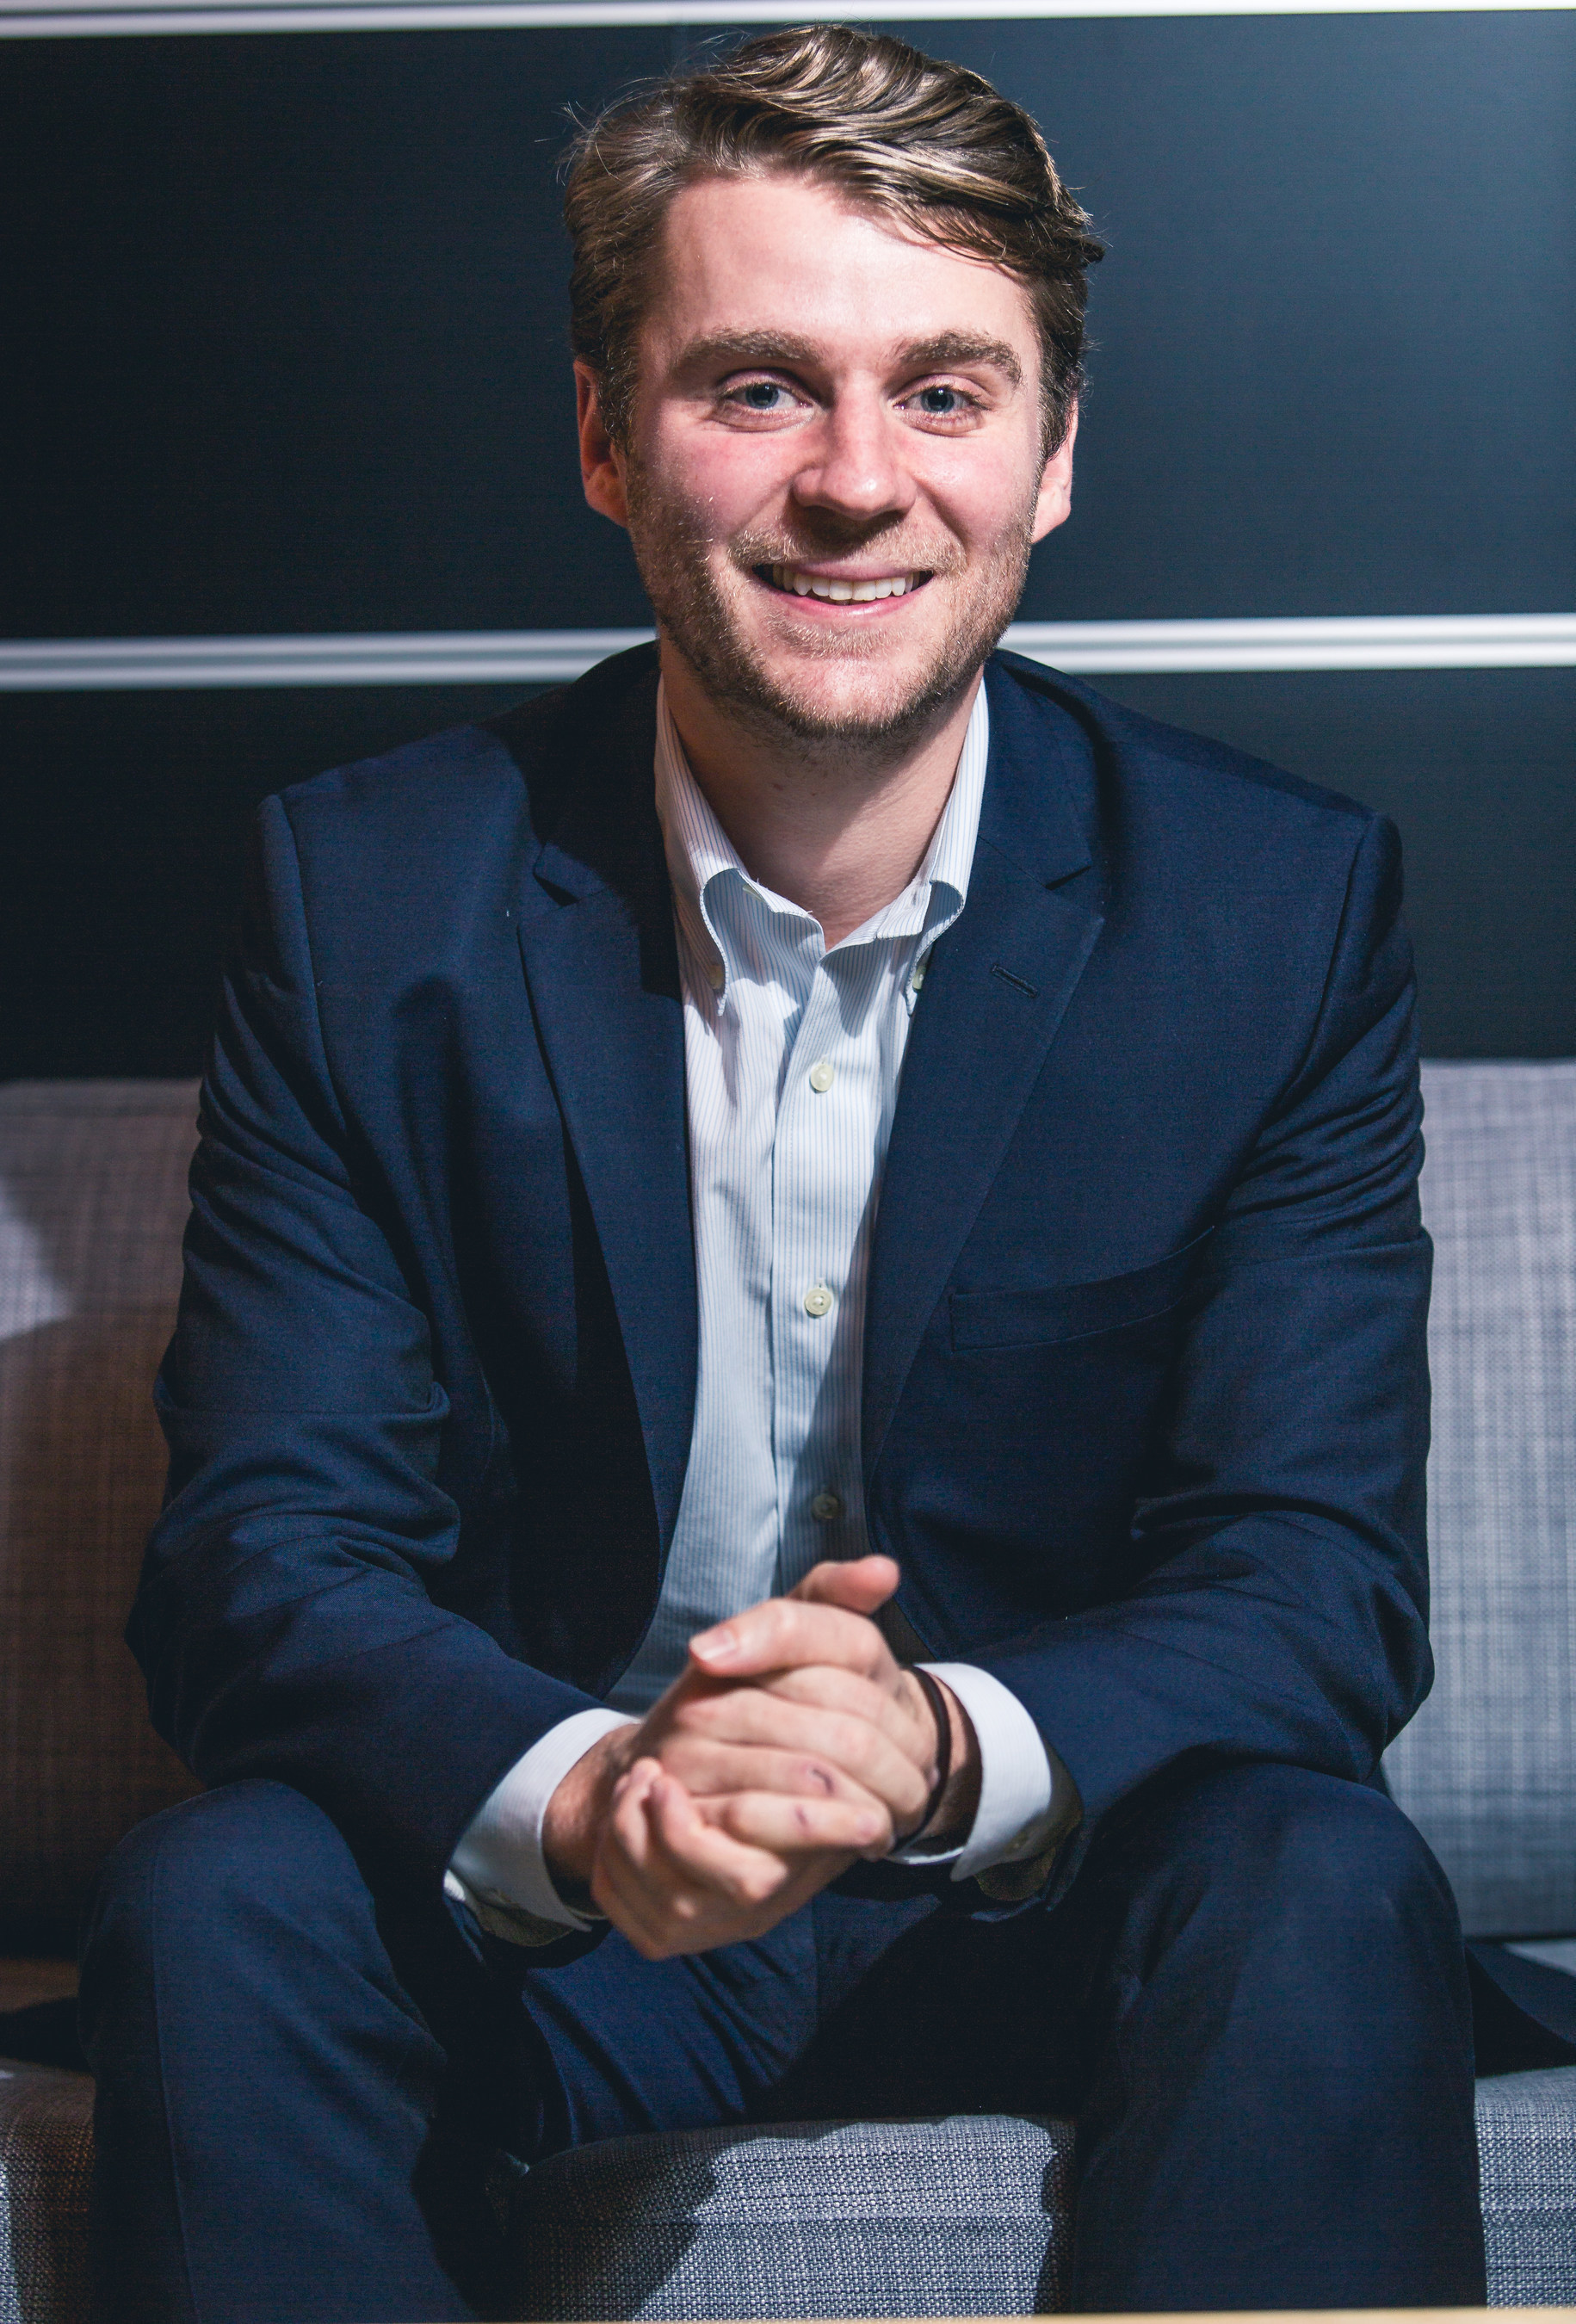 Status Labs President and Co-Founder, Darius Fisher